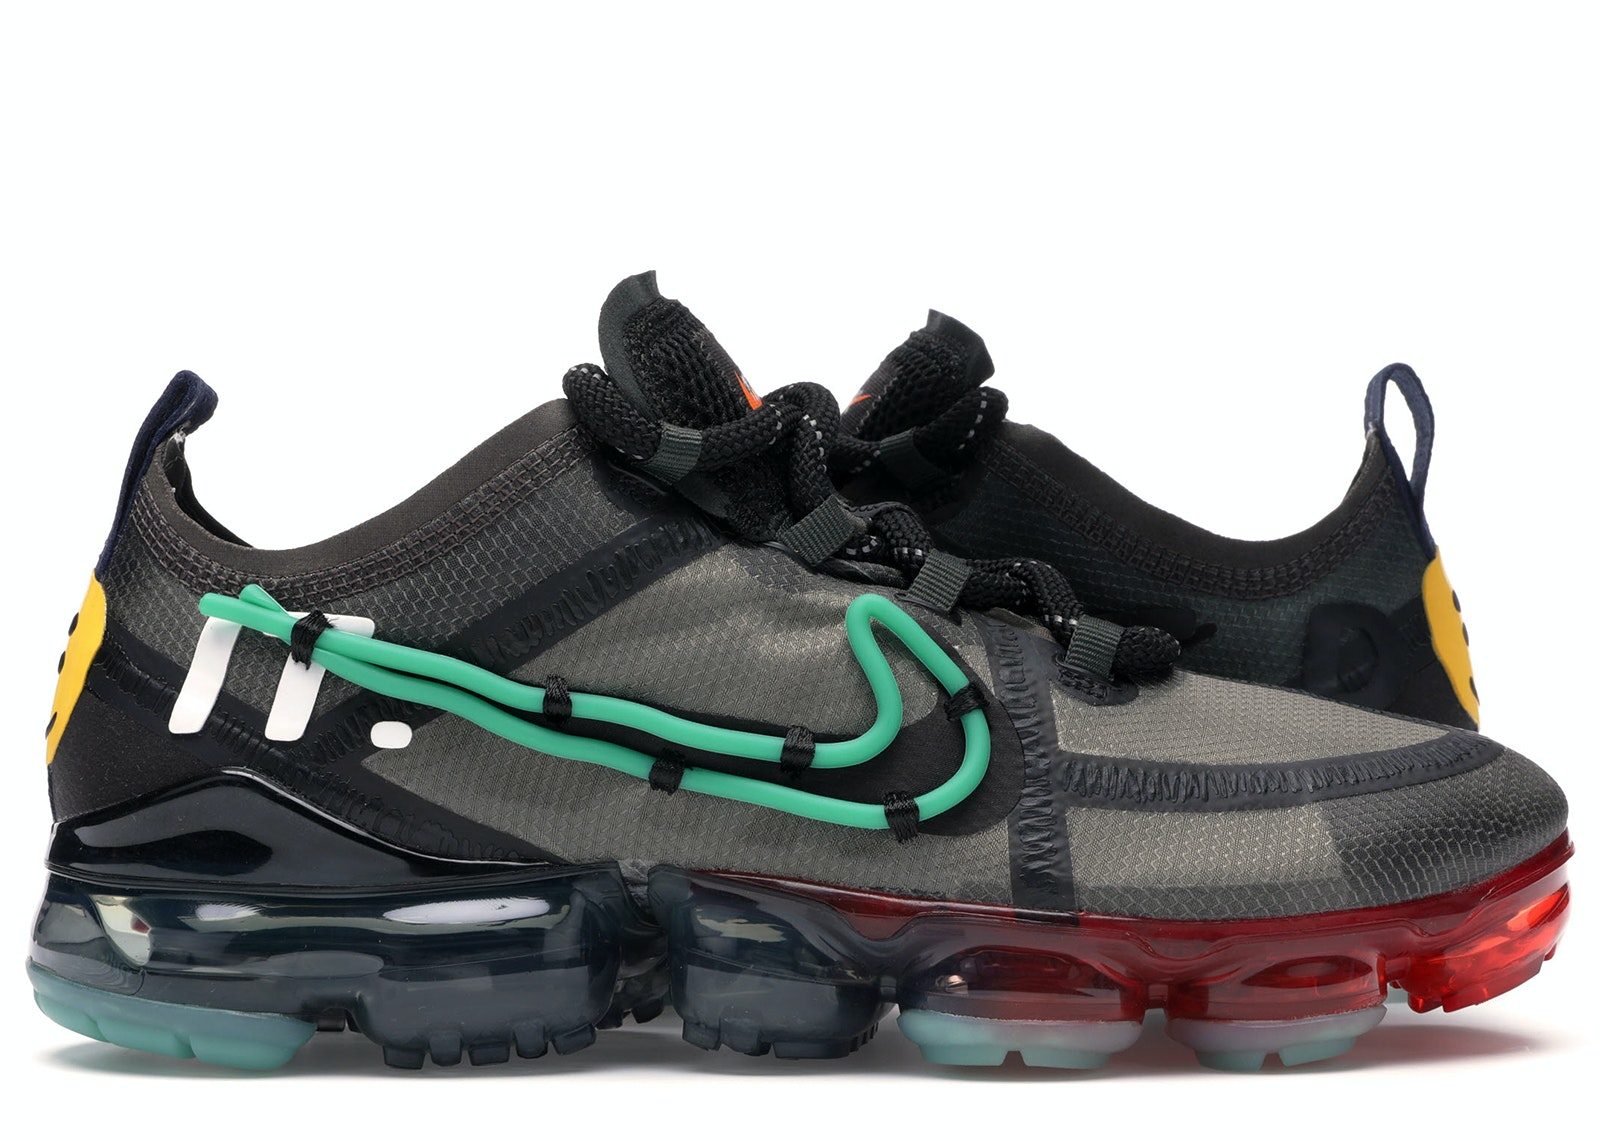 Nike vapormax plus ice blue in 2020 Nike air force 1 outfit